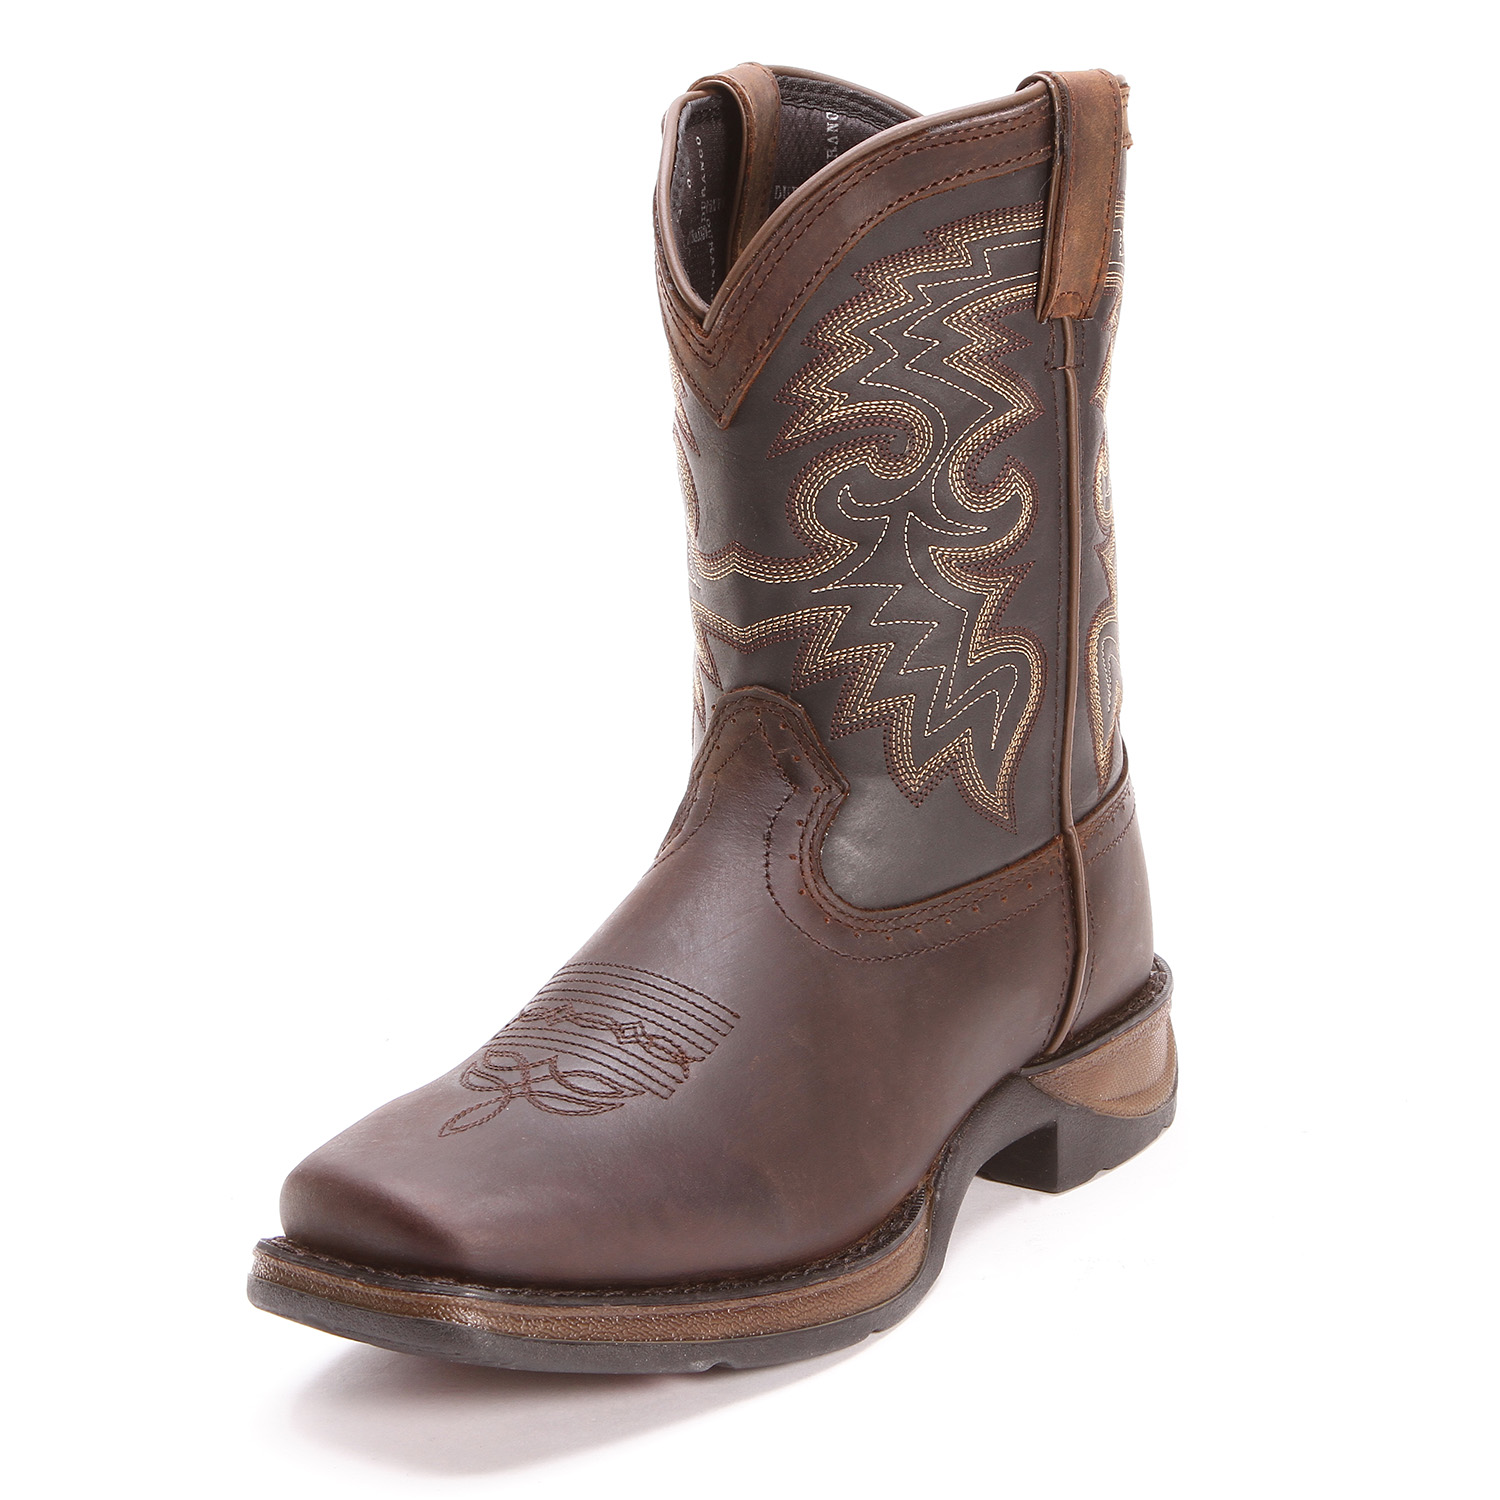 Durango Youth Unisex Rebel Square Toe Cowboy Boots Brown